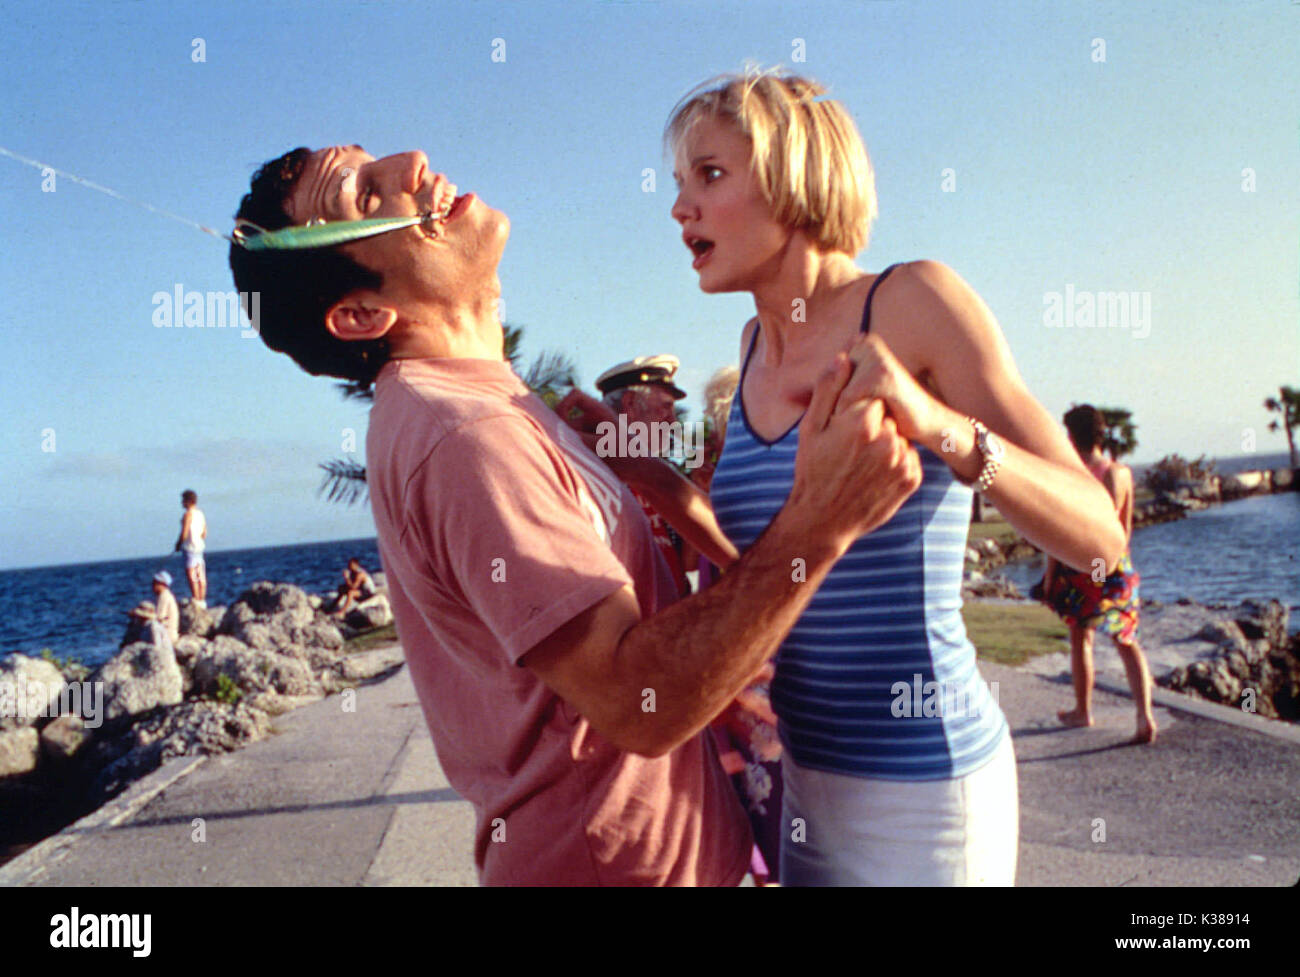 THERE'S SOMETHING ABOUT MARY (US1998) BEN STILLER, CAMERON DIAZ     Date: 1998 - Stock Image